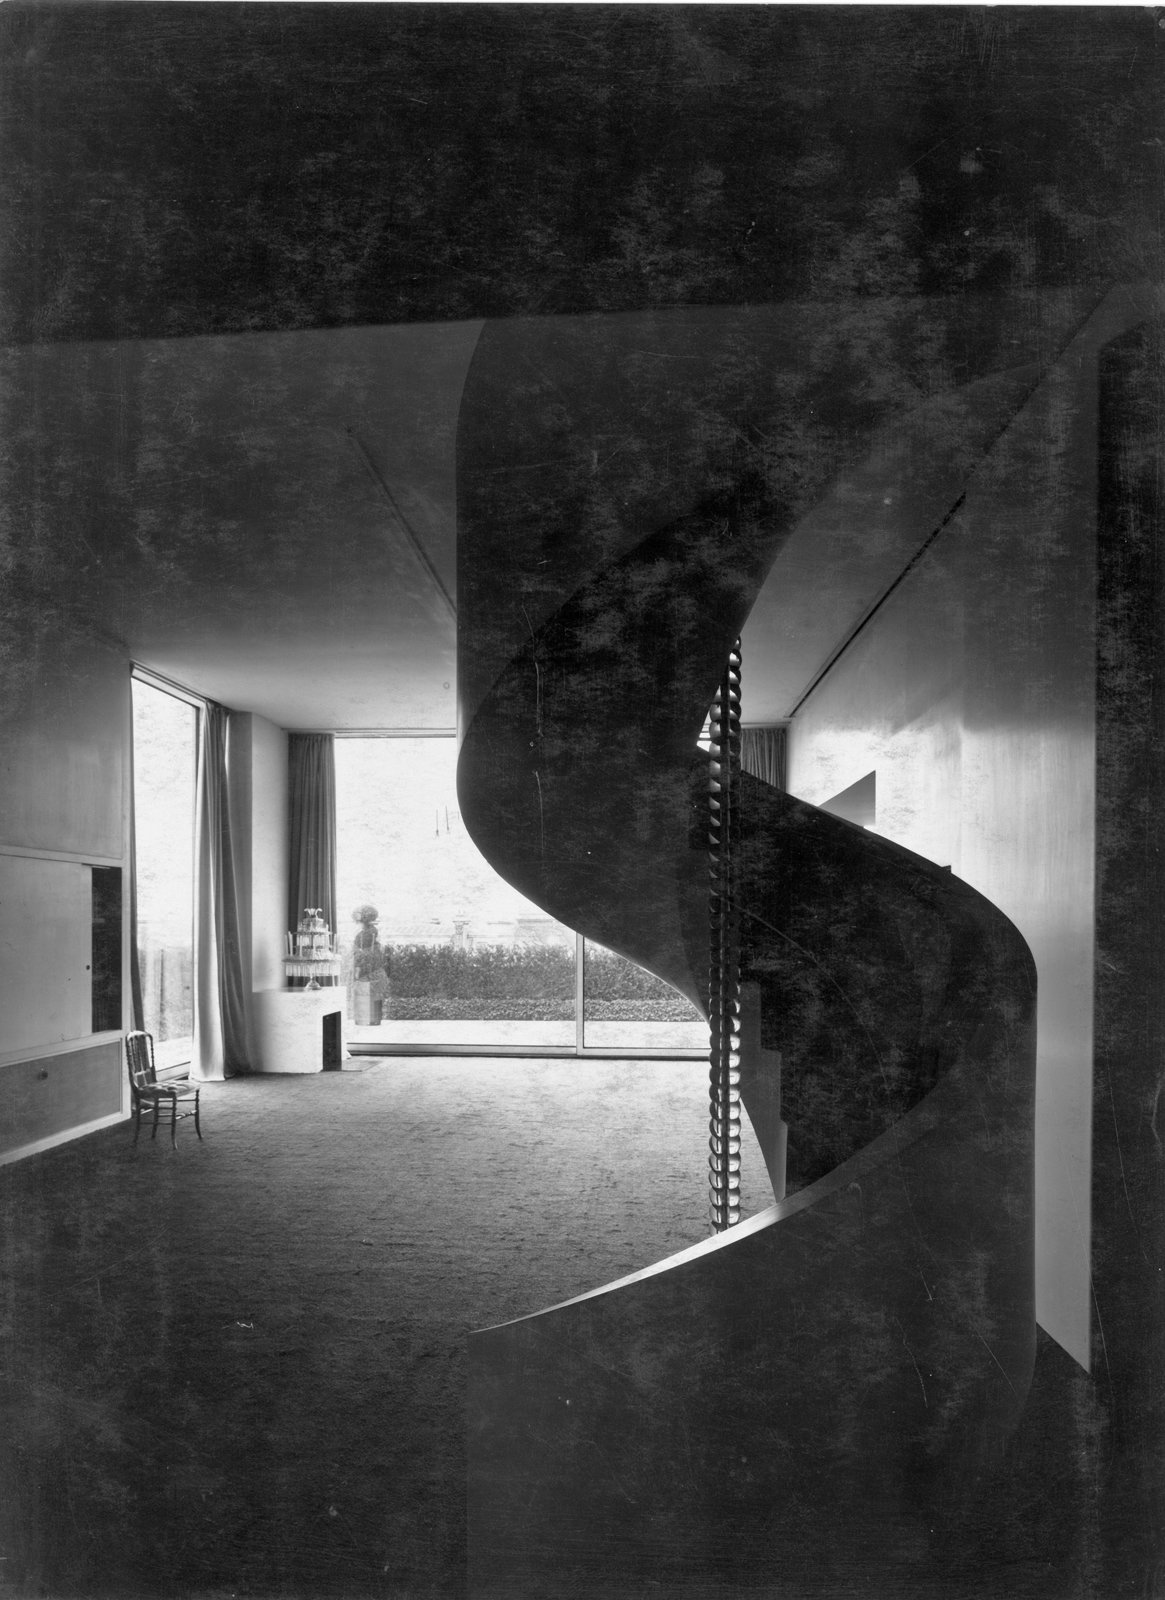 Charles de Beistegui, a collector living in Paris in the 1930s, commissioned Le Corbusier to design a spectacular penthouse apartment for him on the Champs-Élysées. Though the home no longer exists, save for archival black-and-white shots, Michael Herrman was greatly inspired by it. Seen here, a spiral staircase in the living room of Beistegui's apartment.  Photo 10 of 11 in A Corbusier-Inspired Parisian Home